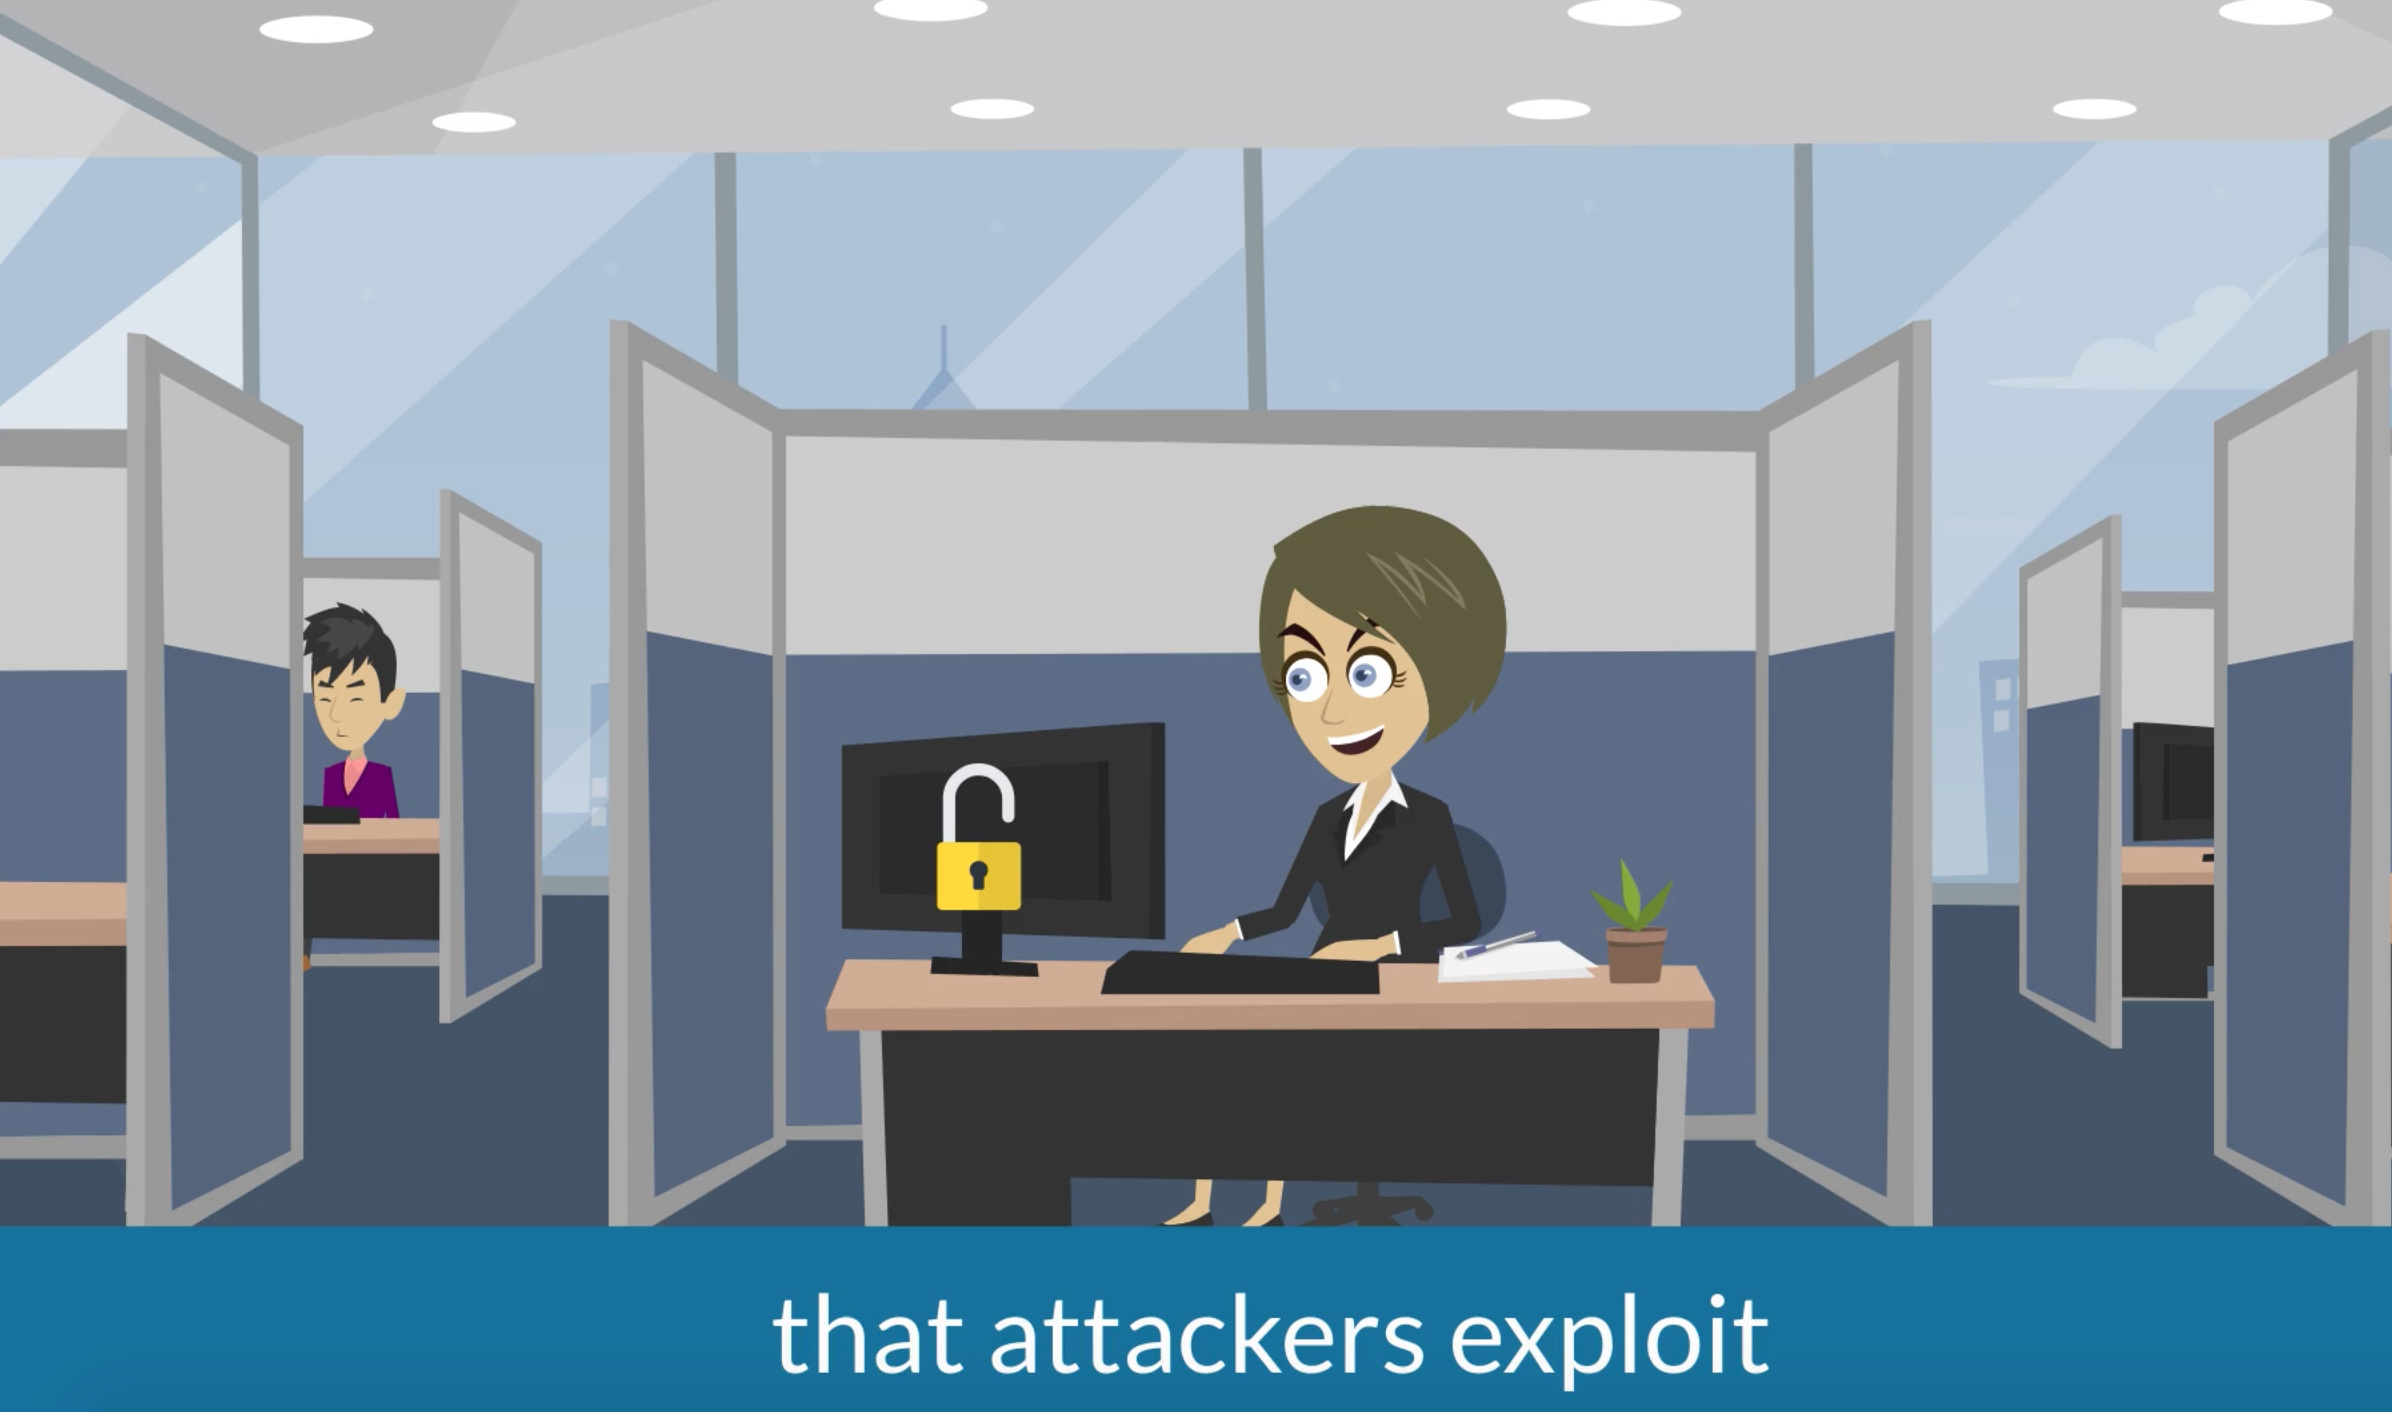 Attackers exploit human vulnerabilities